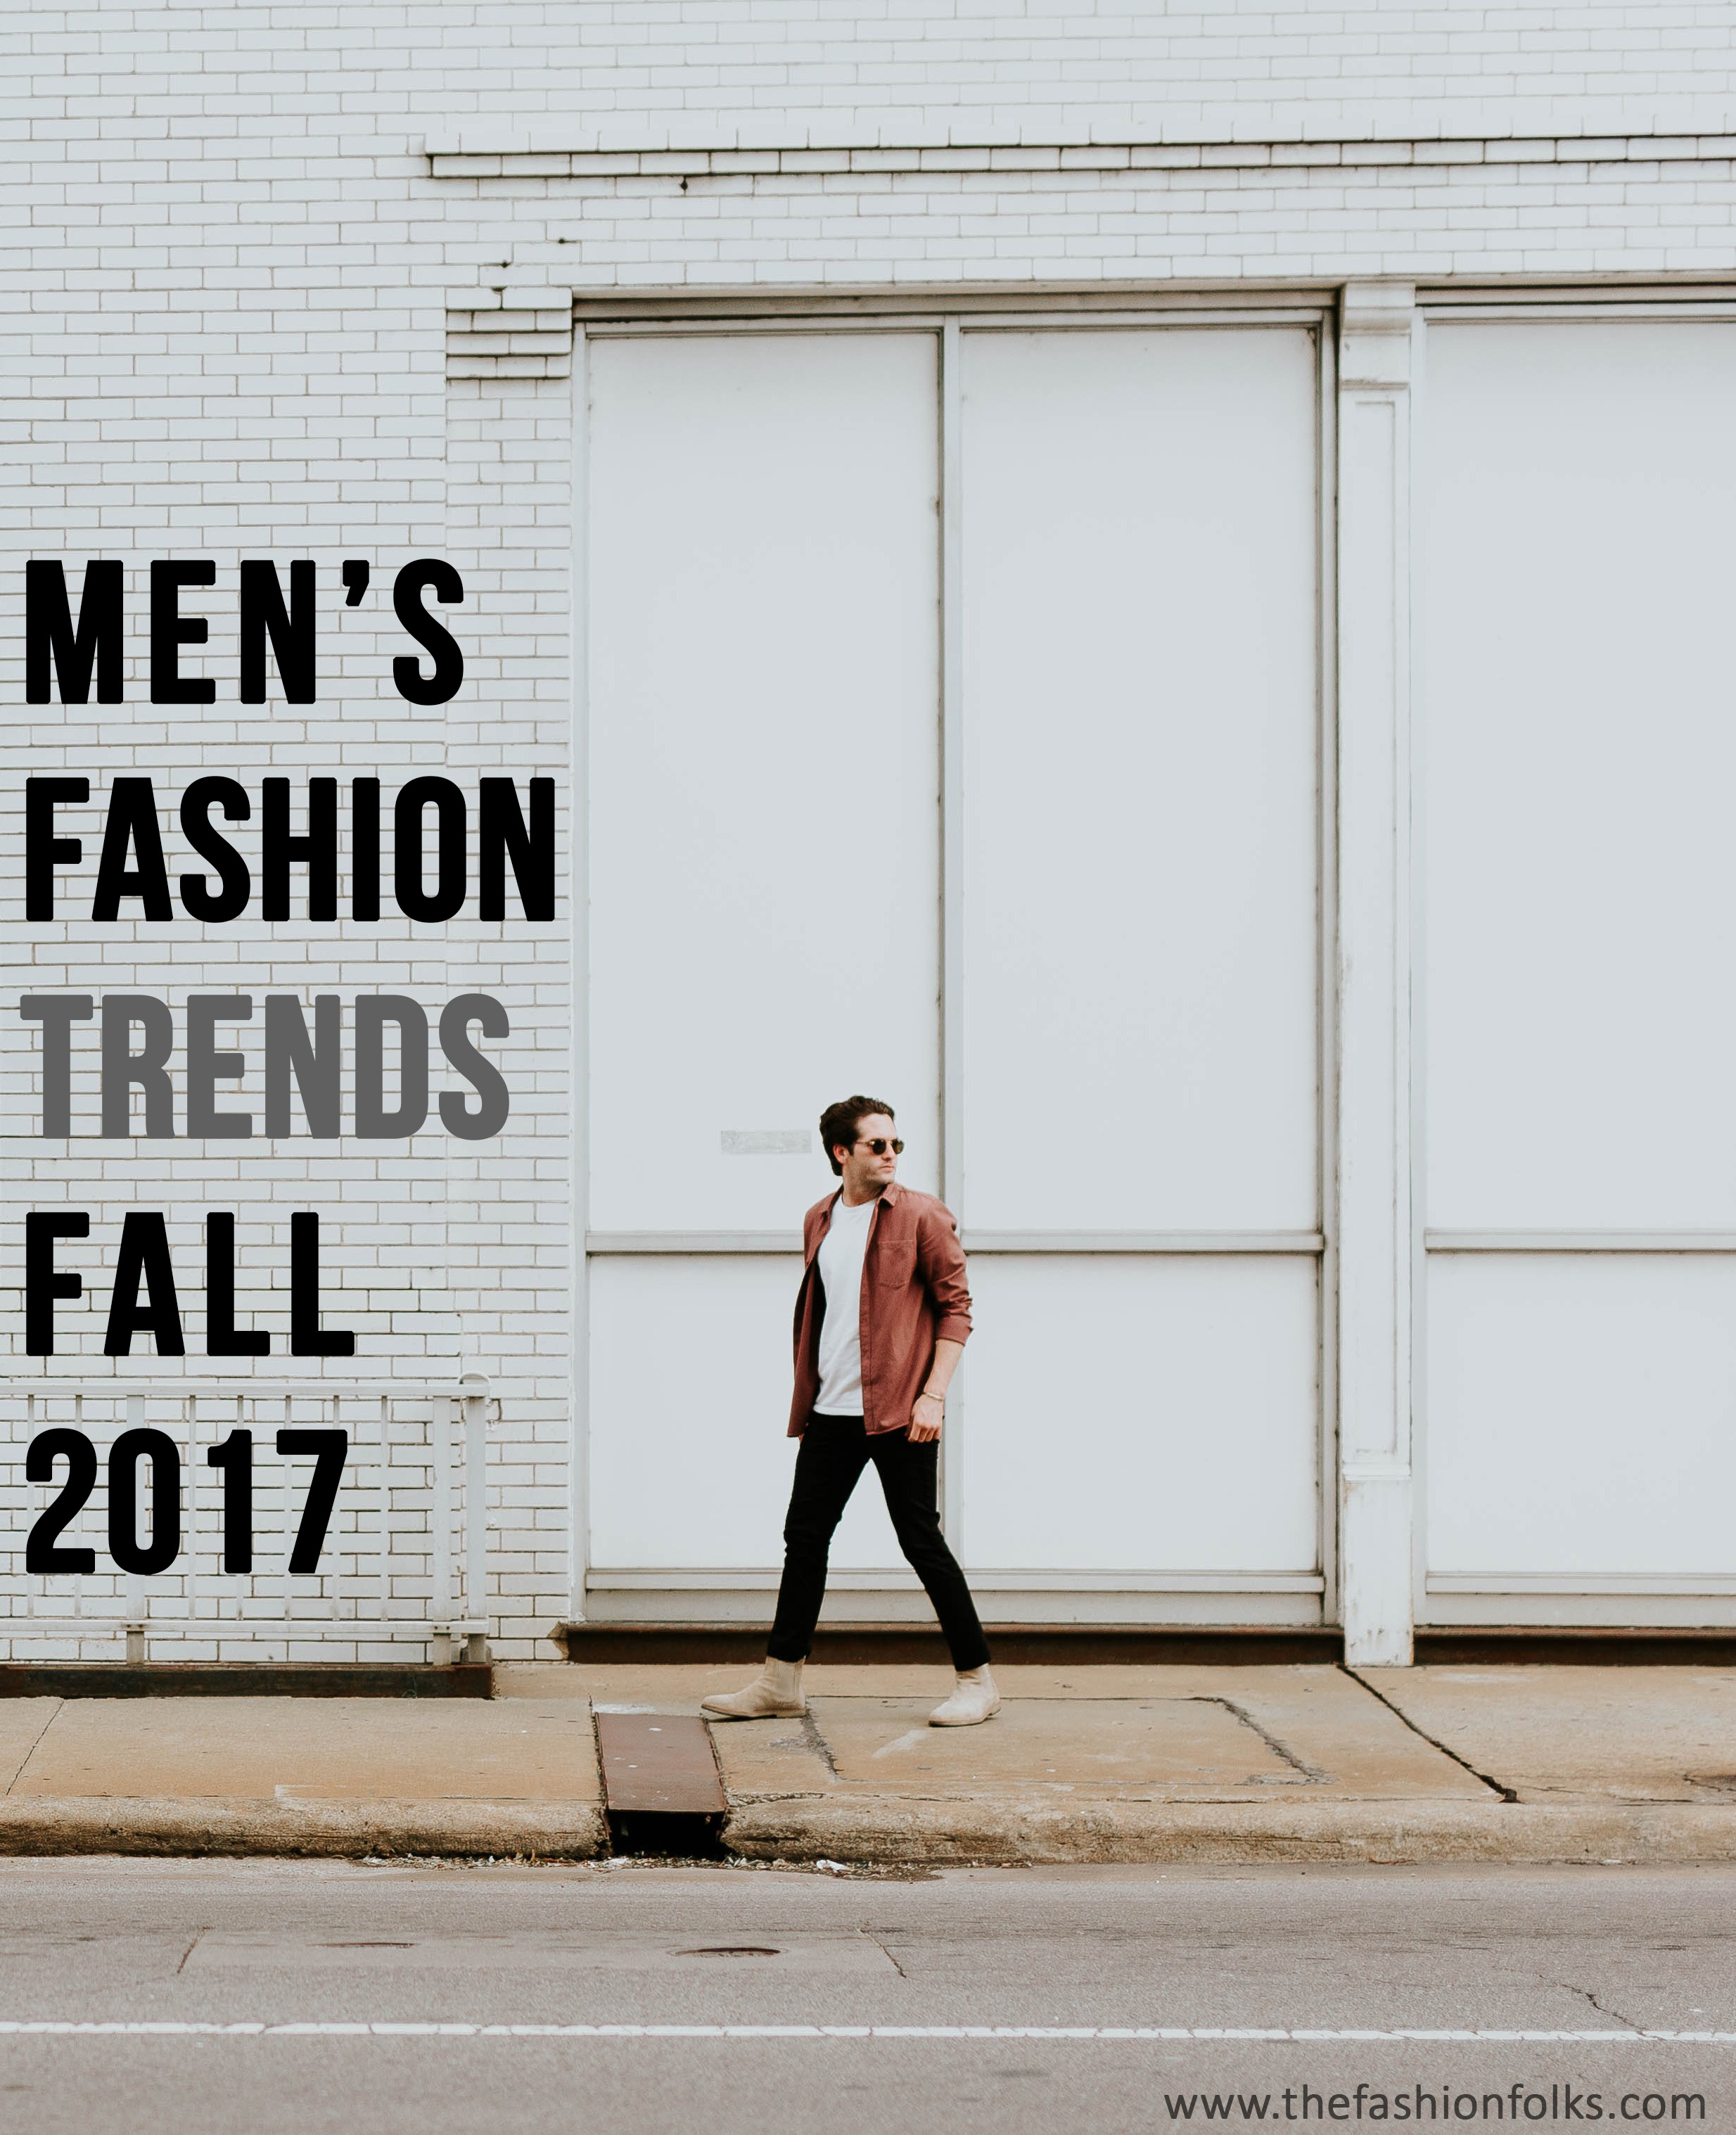 Men's Fashion Trends Fall 2017 - The Fashion Folks | Monochrome, Check blazers, 1980s style, oversized silhouette